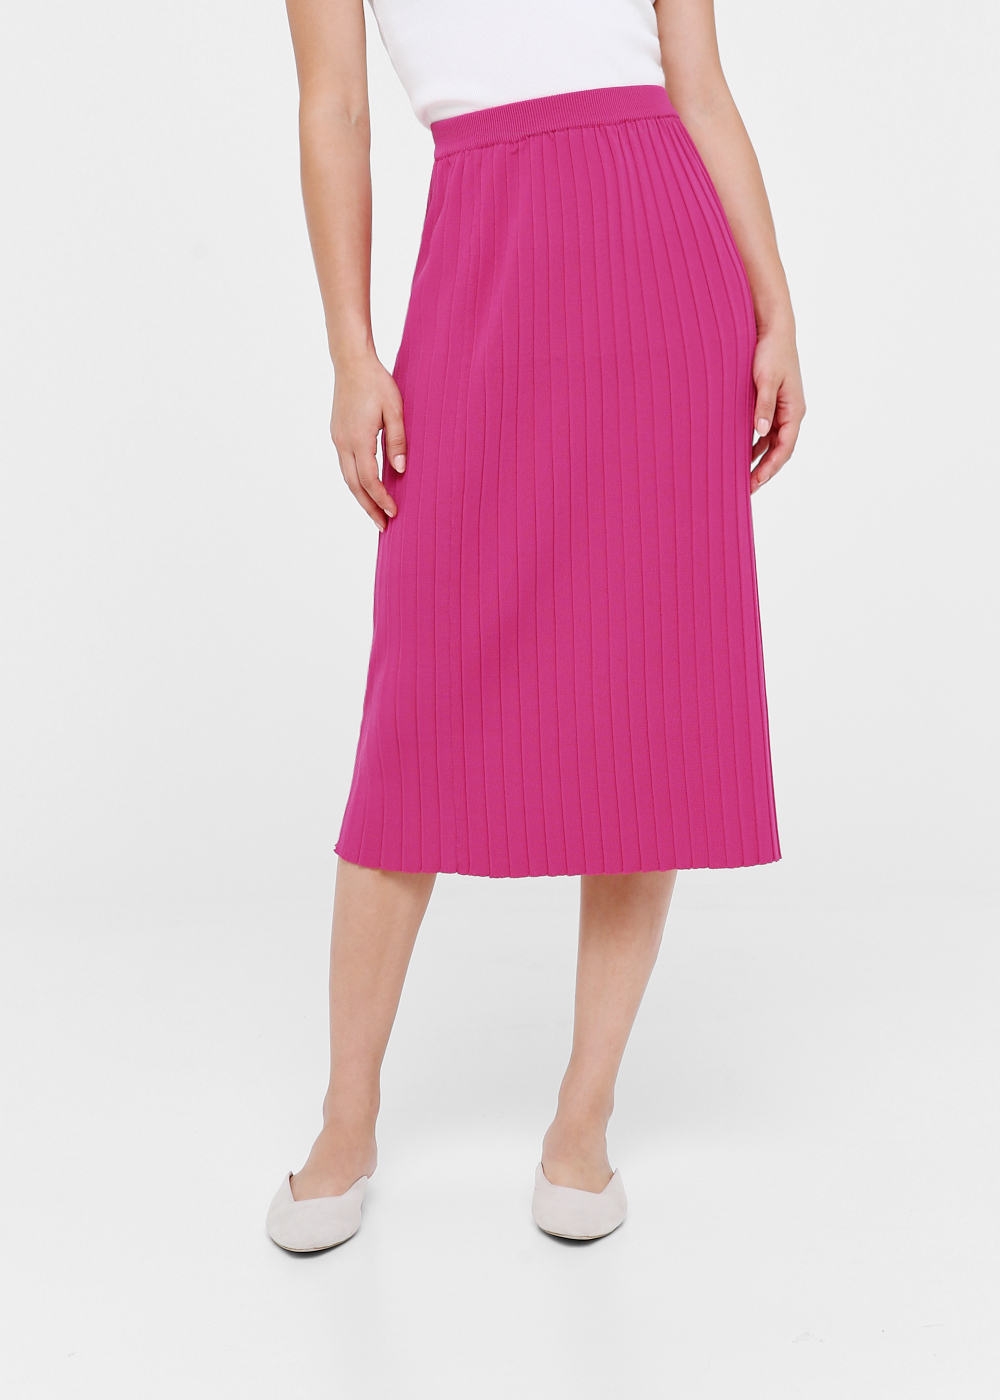 Novella Pleated Knit Skirt